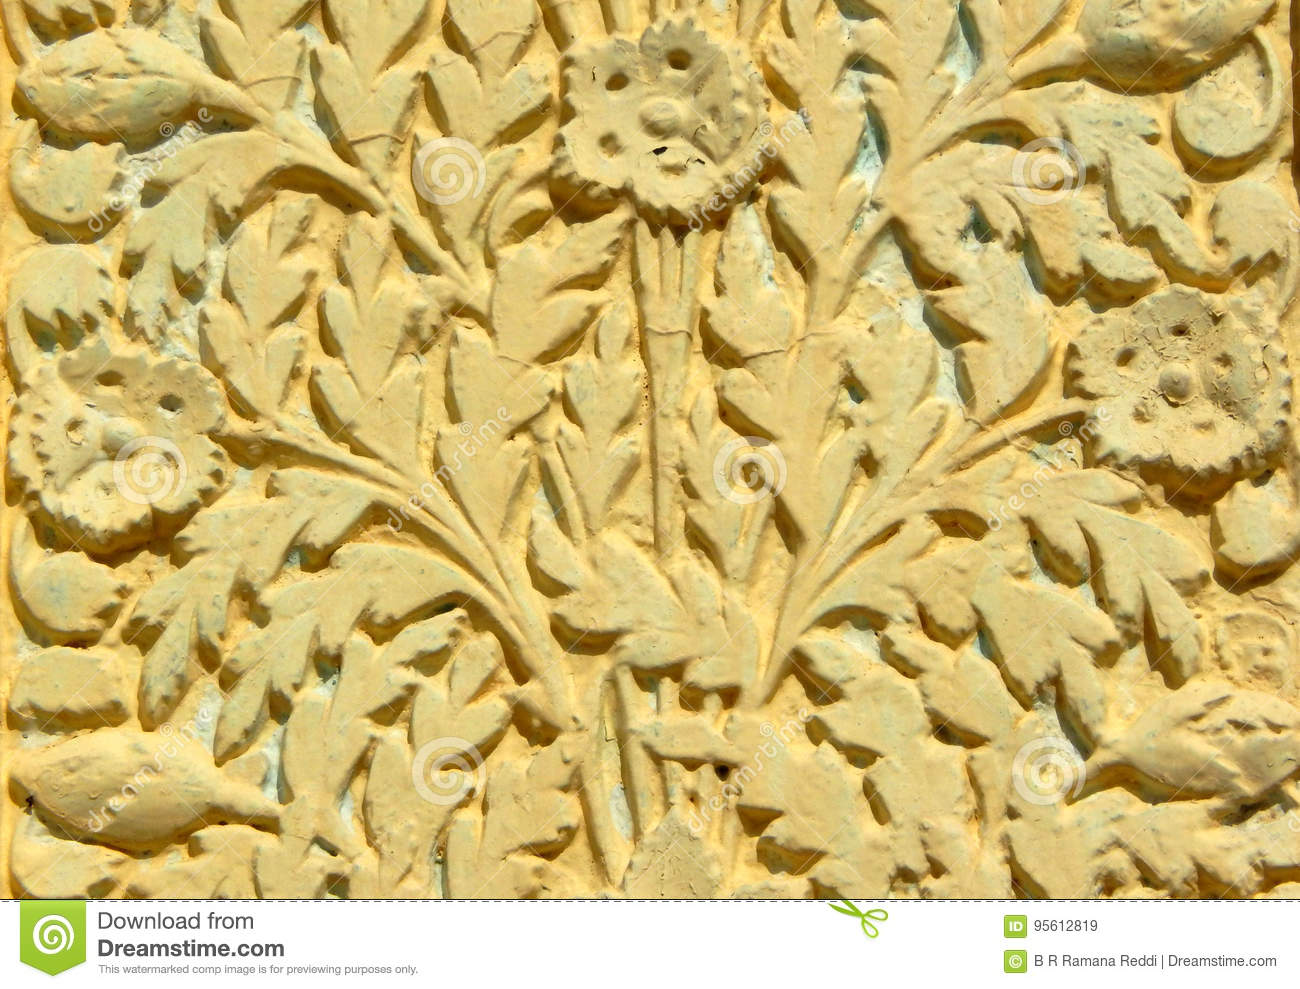 Wall art stucco work of floral designs on exteriors of 200 year old temple